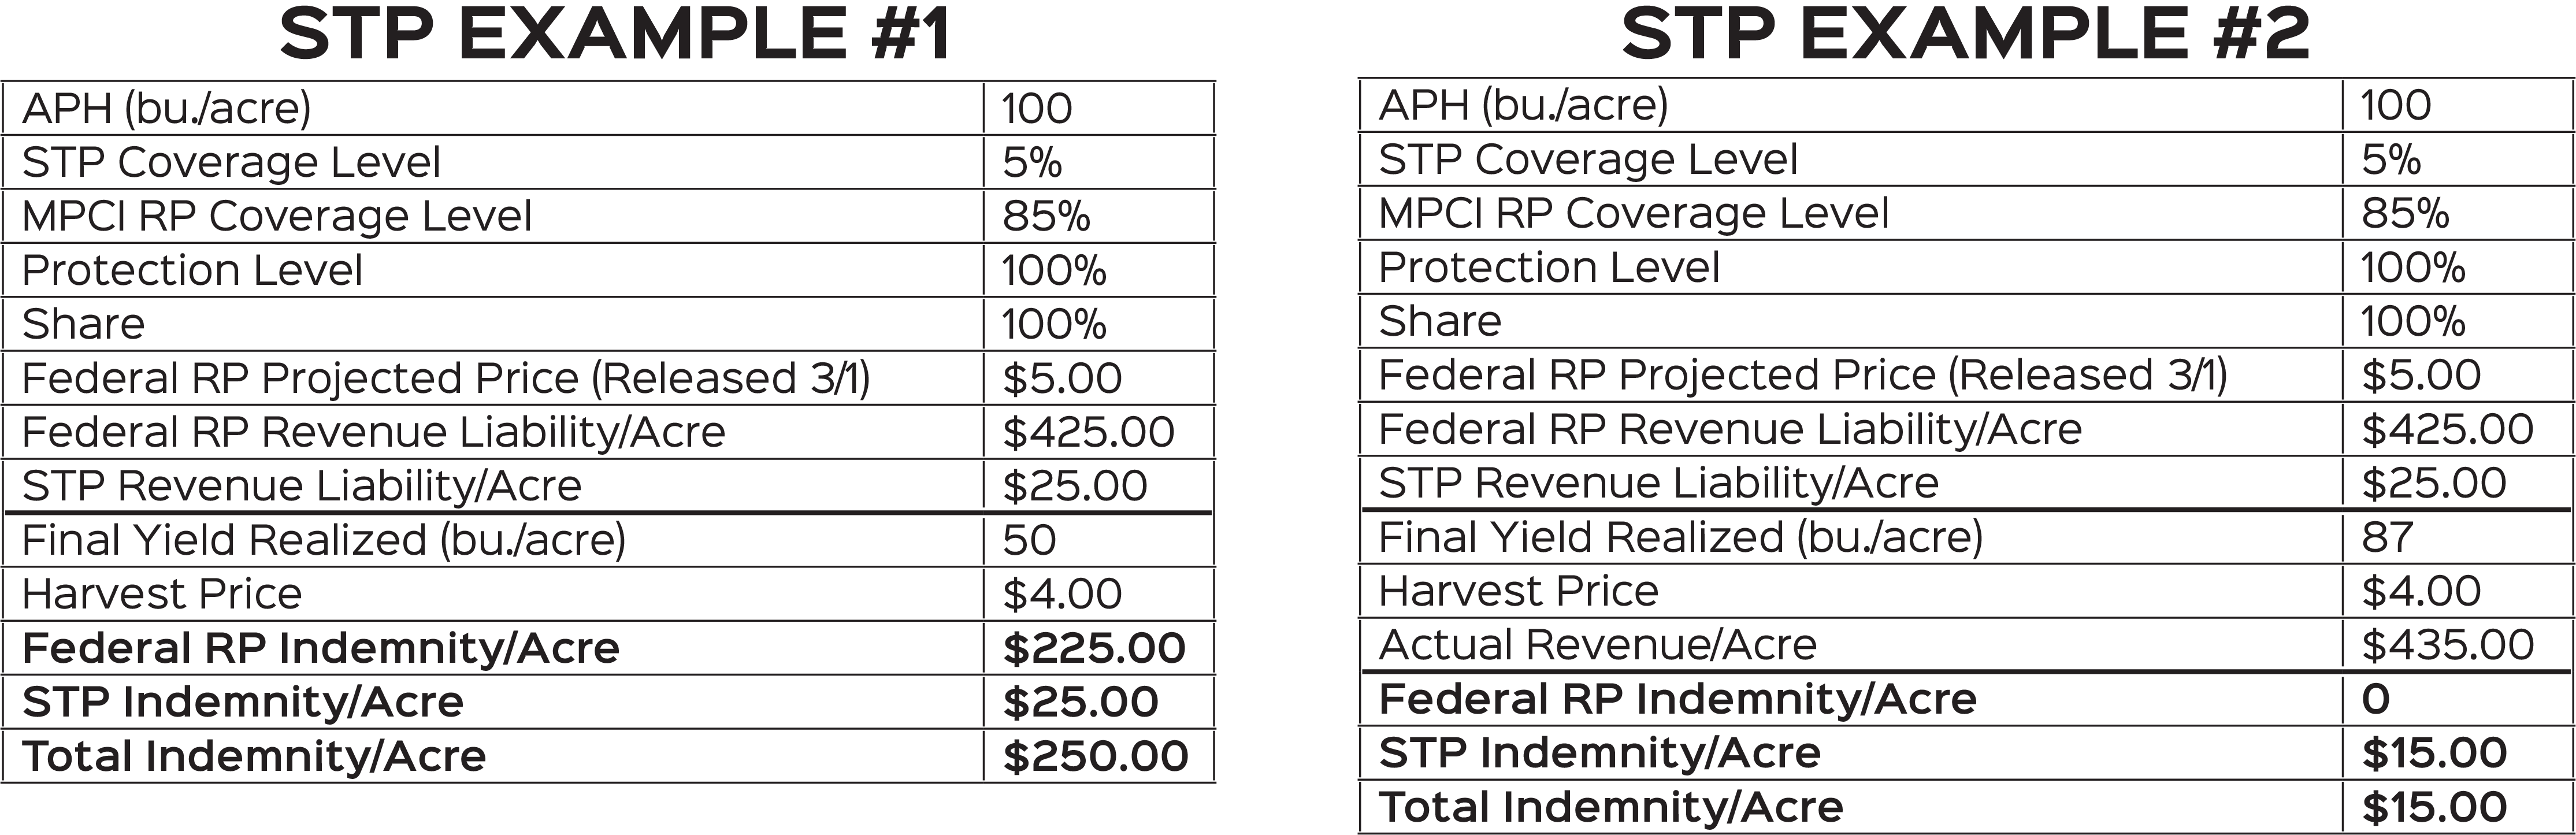 STP Examples